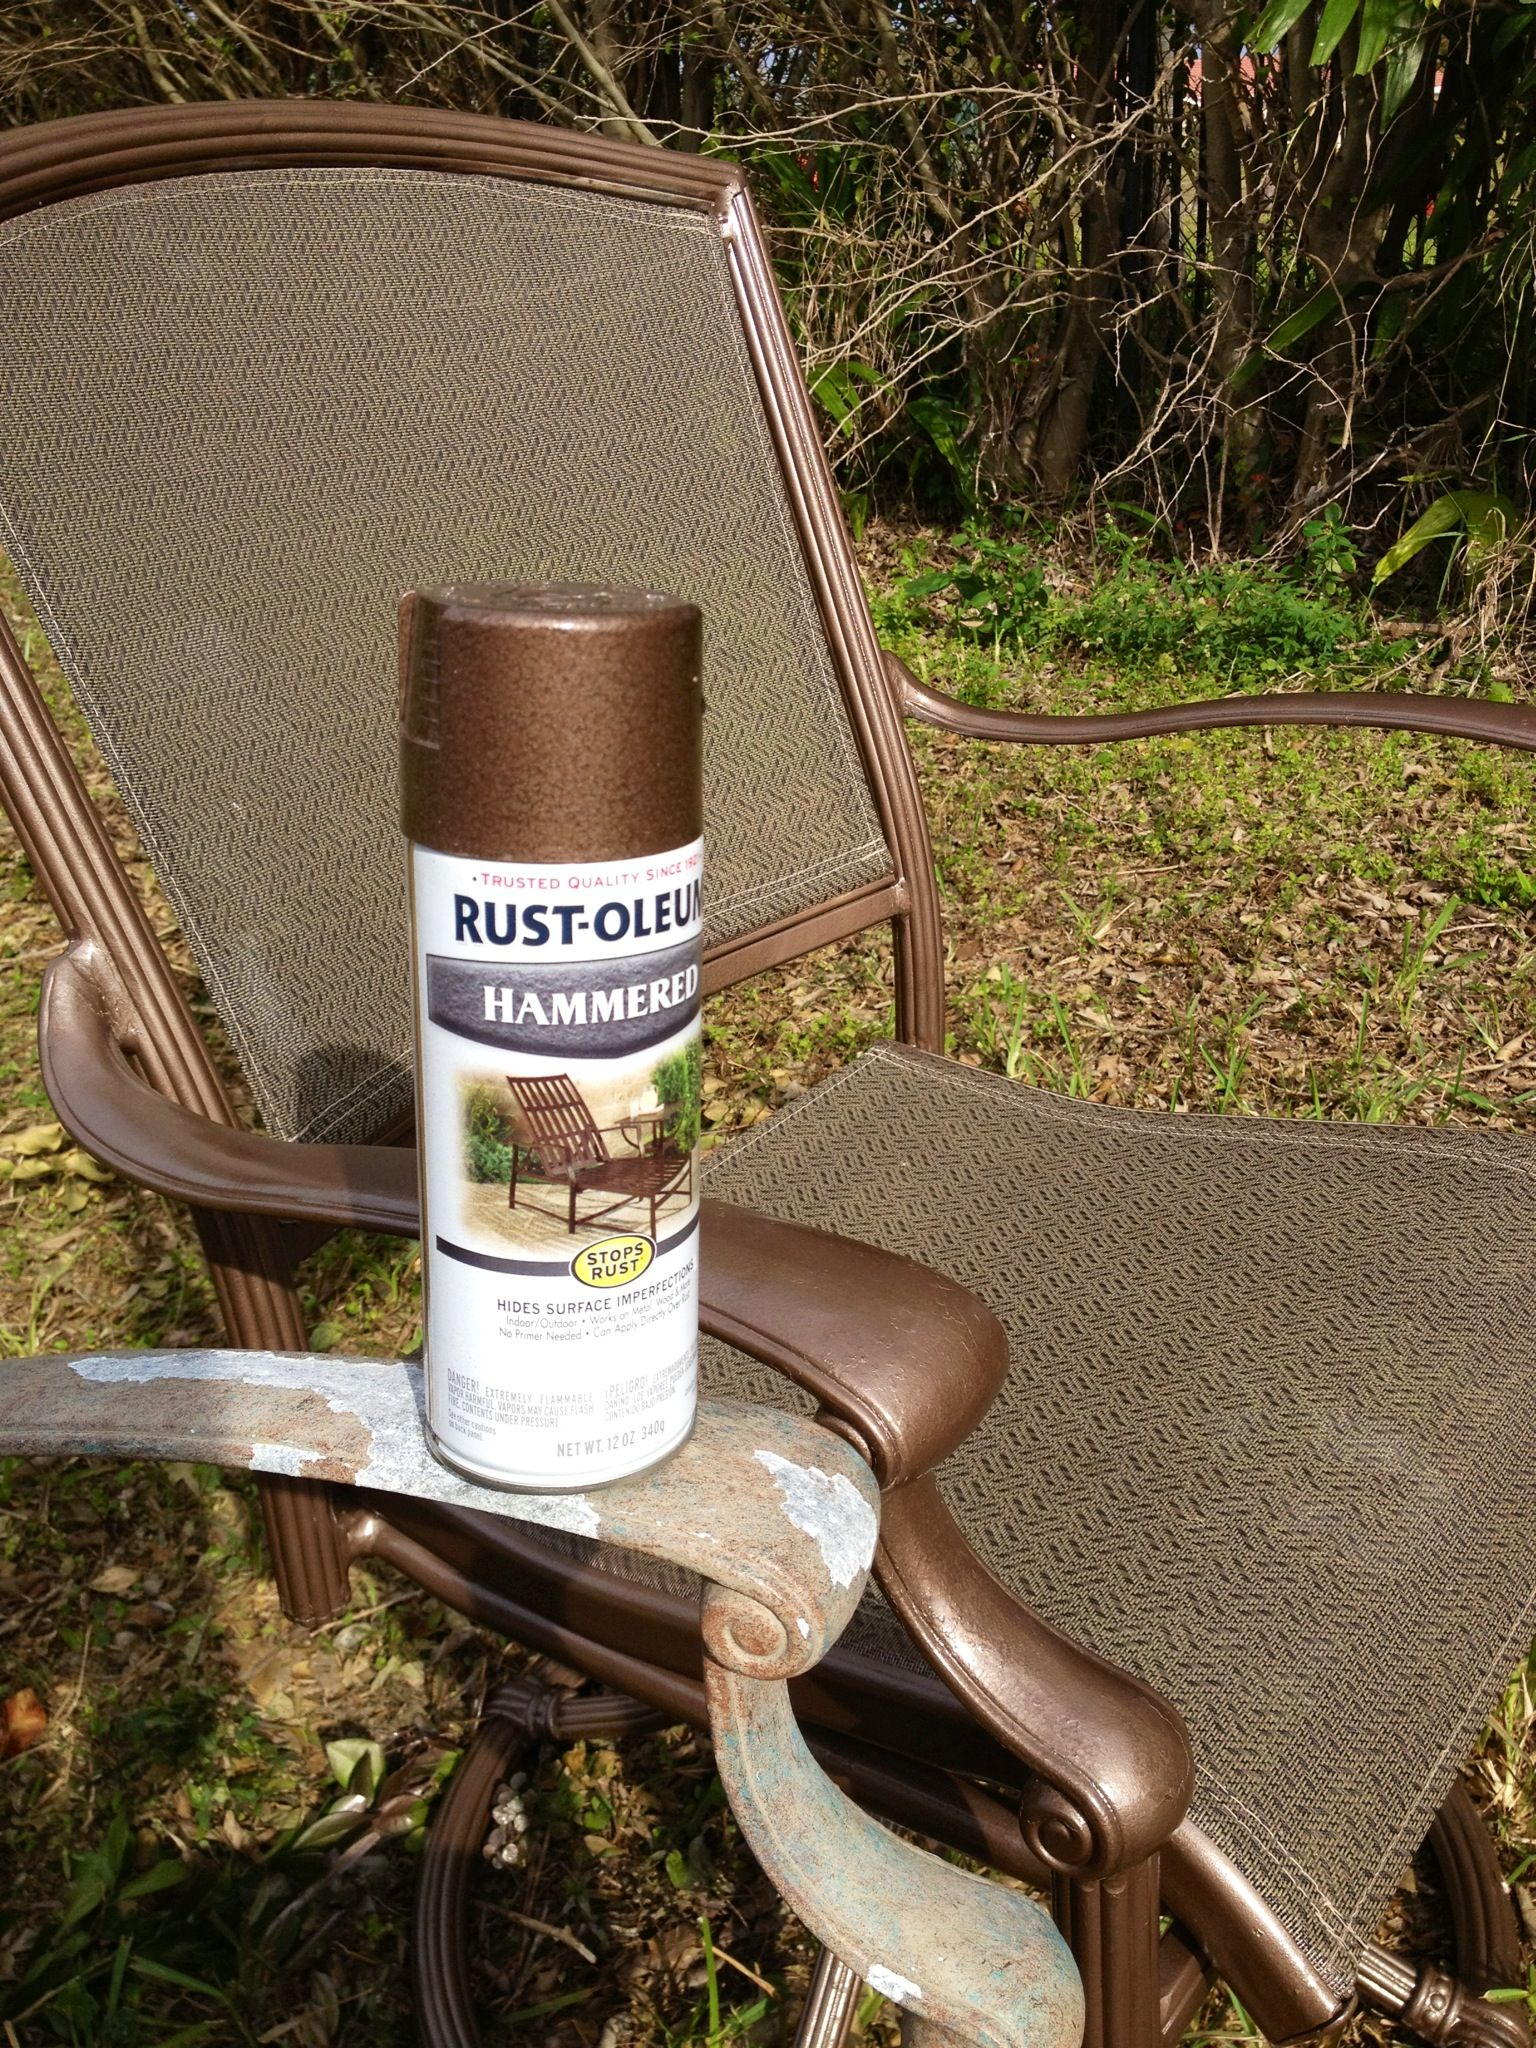 Rustoleum Hammered Metallic Spray Paint For My Upcycled Intended For 2 Person Hammered Bronze Iron Outdoor Swings (View 17 of 25)